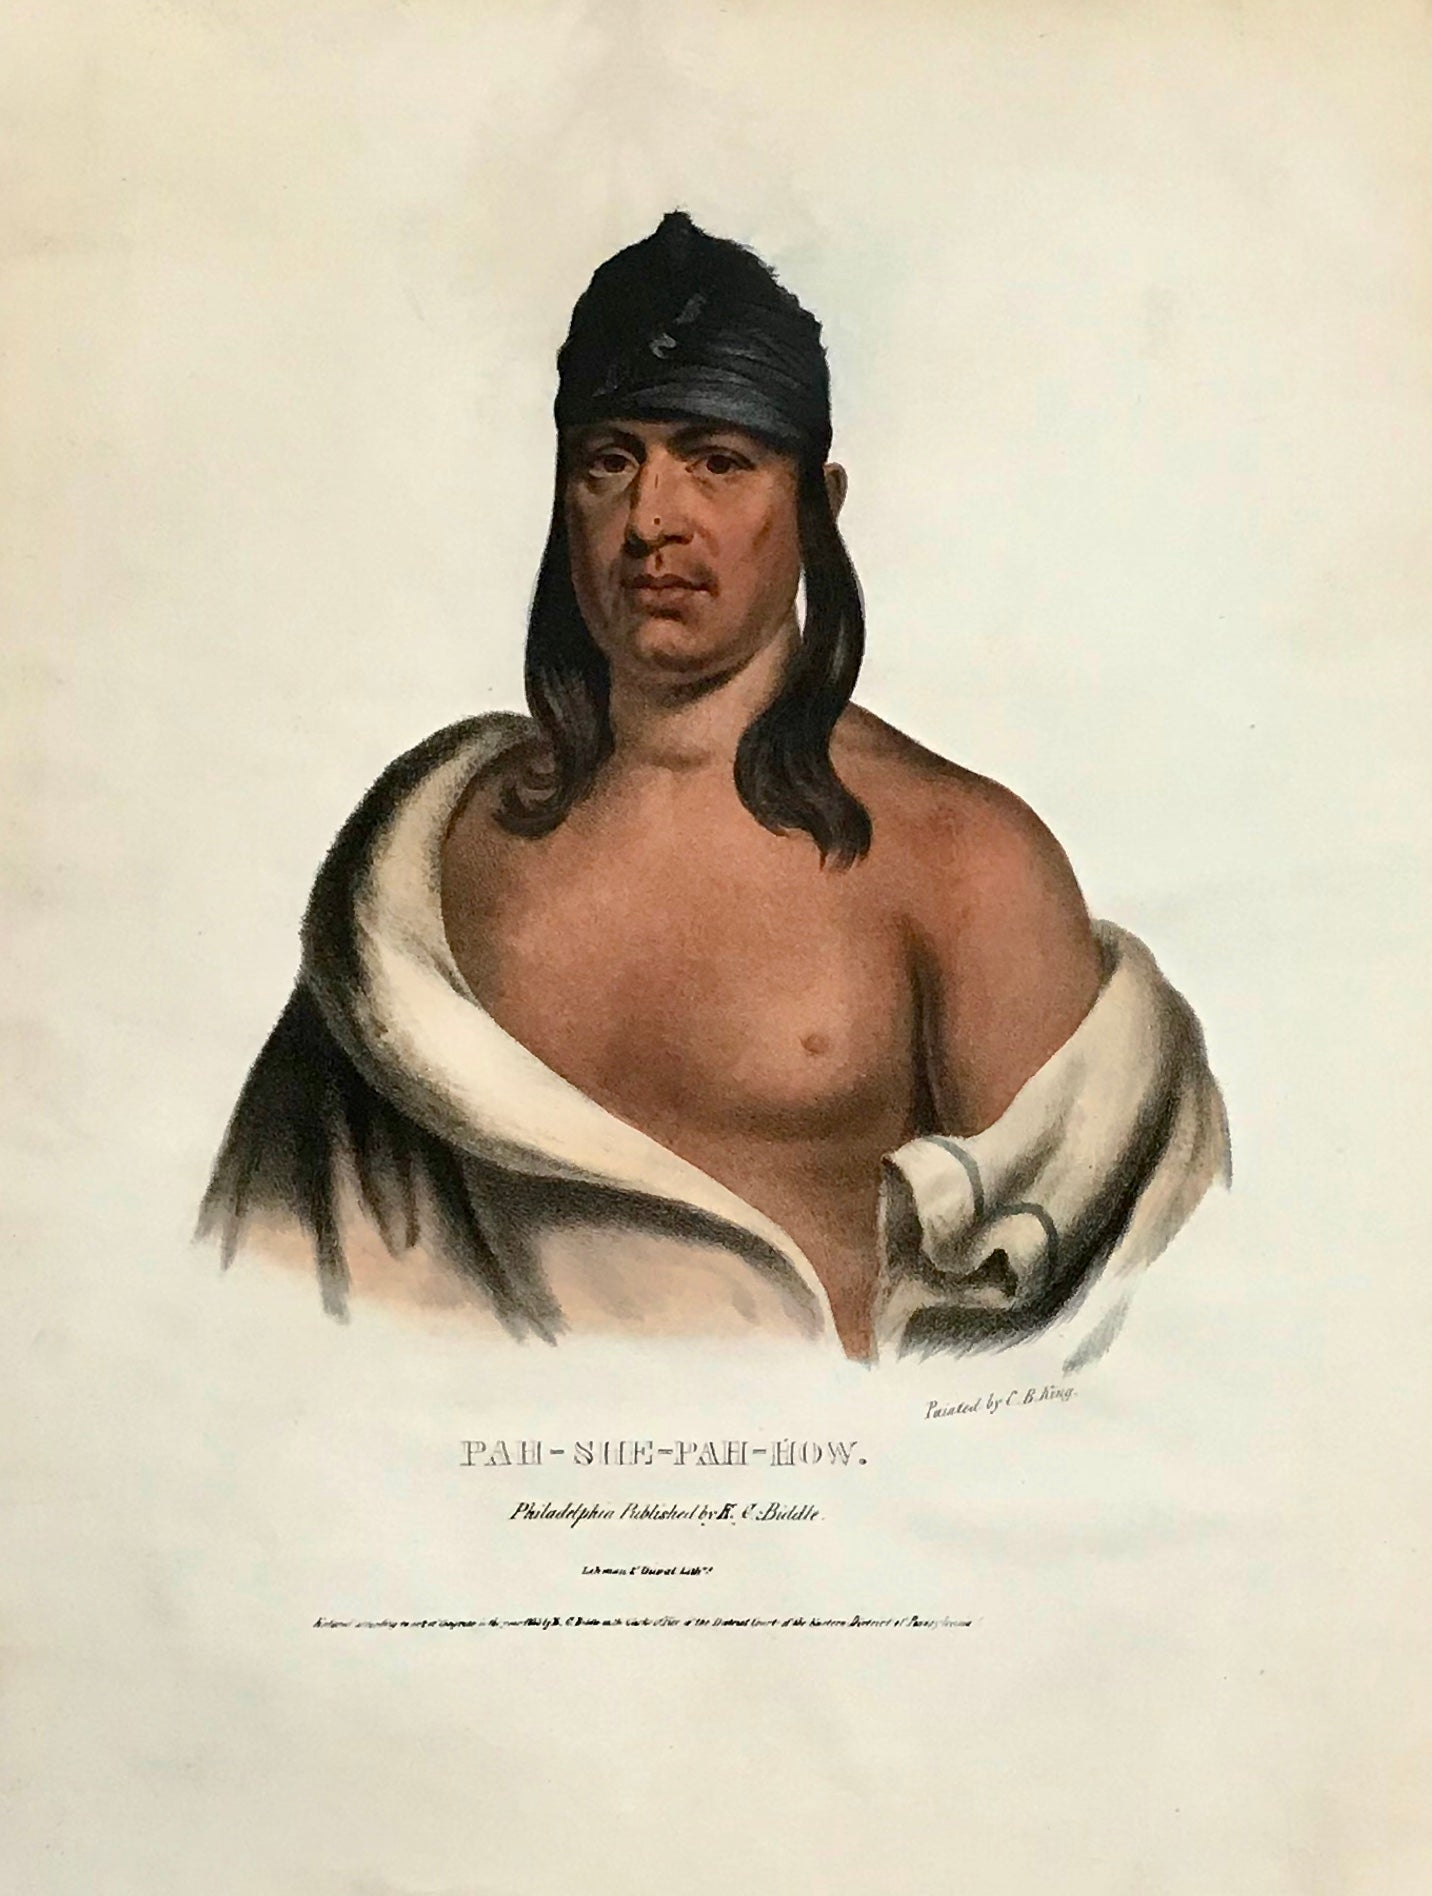 """Pah-She-Pah-How."" Lithograph. Original hand coloring Painting by Charles Bird King (1785-1862) Published in: ""History of the Indian Tribes of North America"" Authors: Thomas Loraine McKenny (1785-1859) and James Hall (1793-1868)"